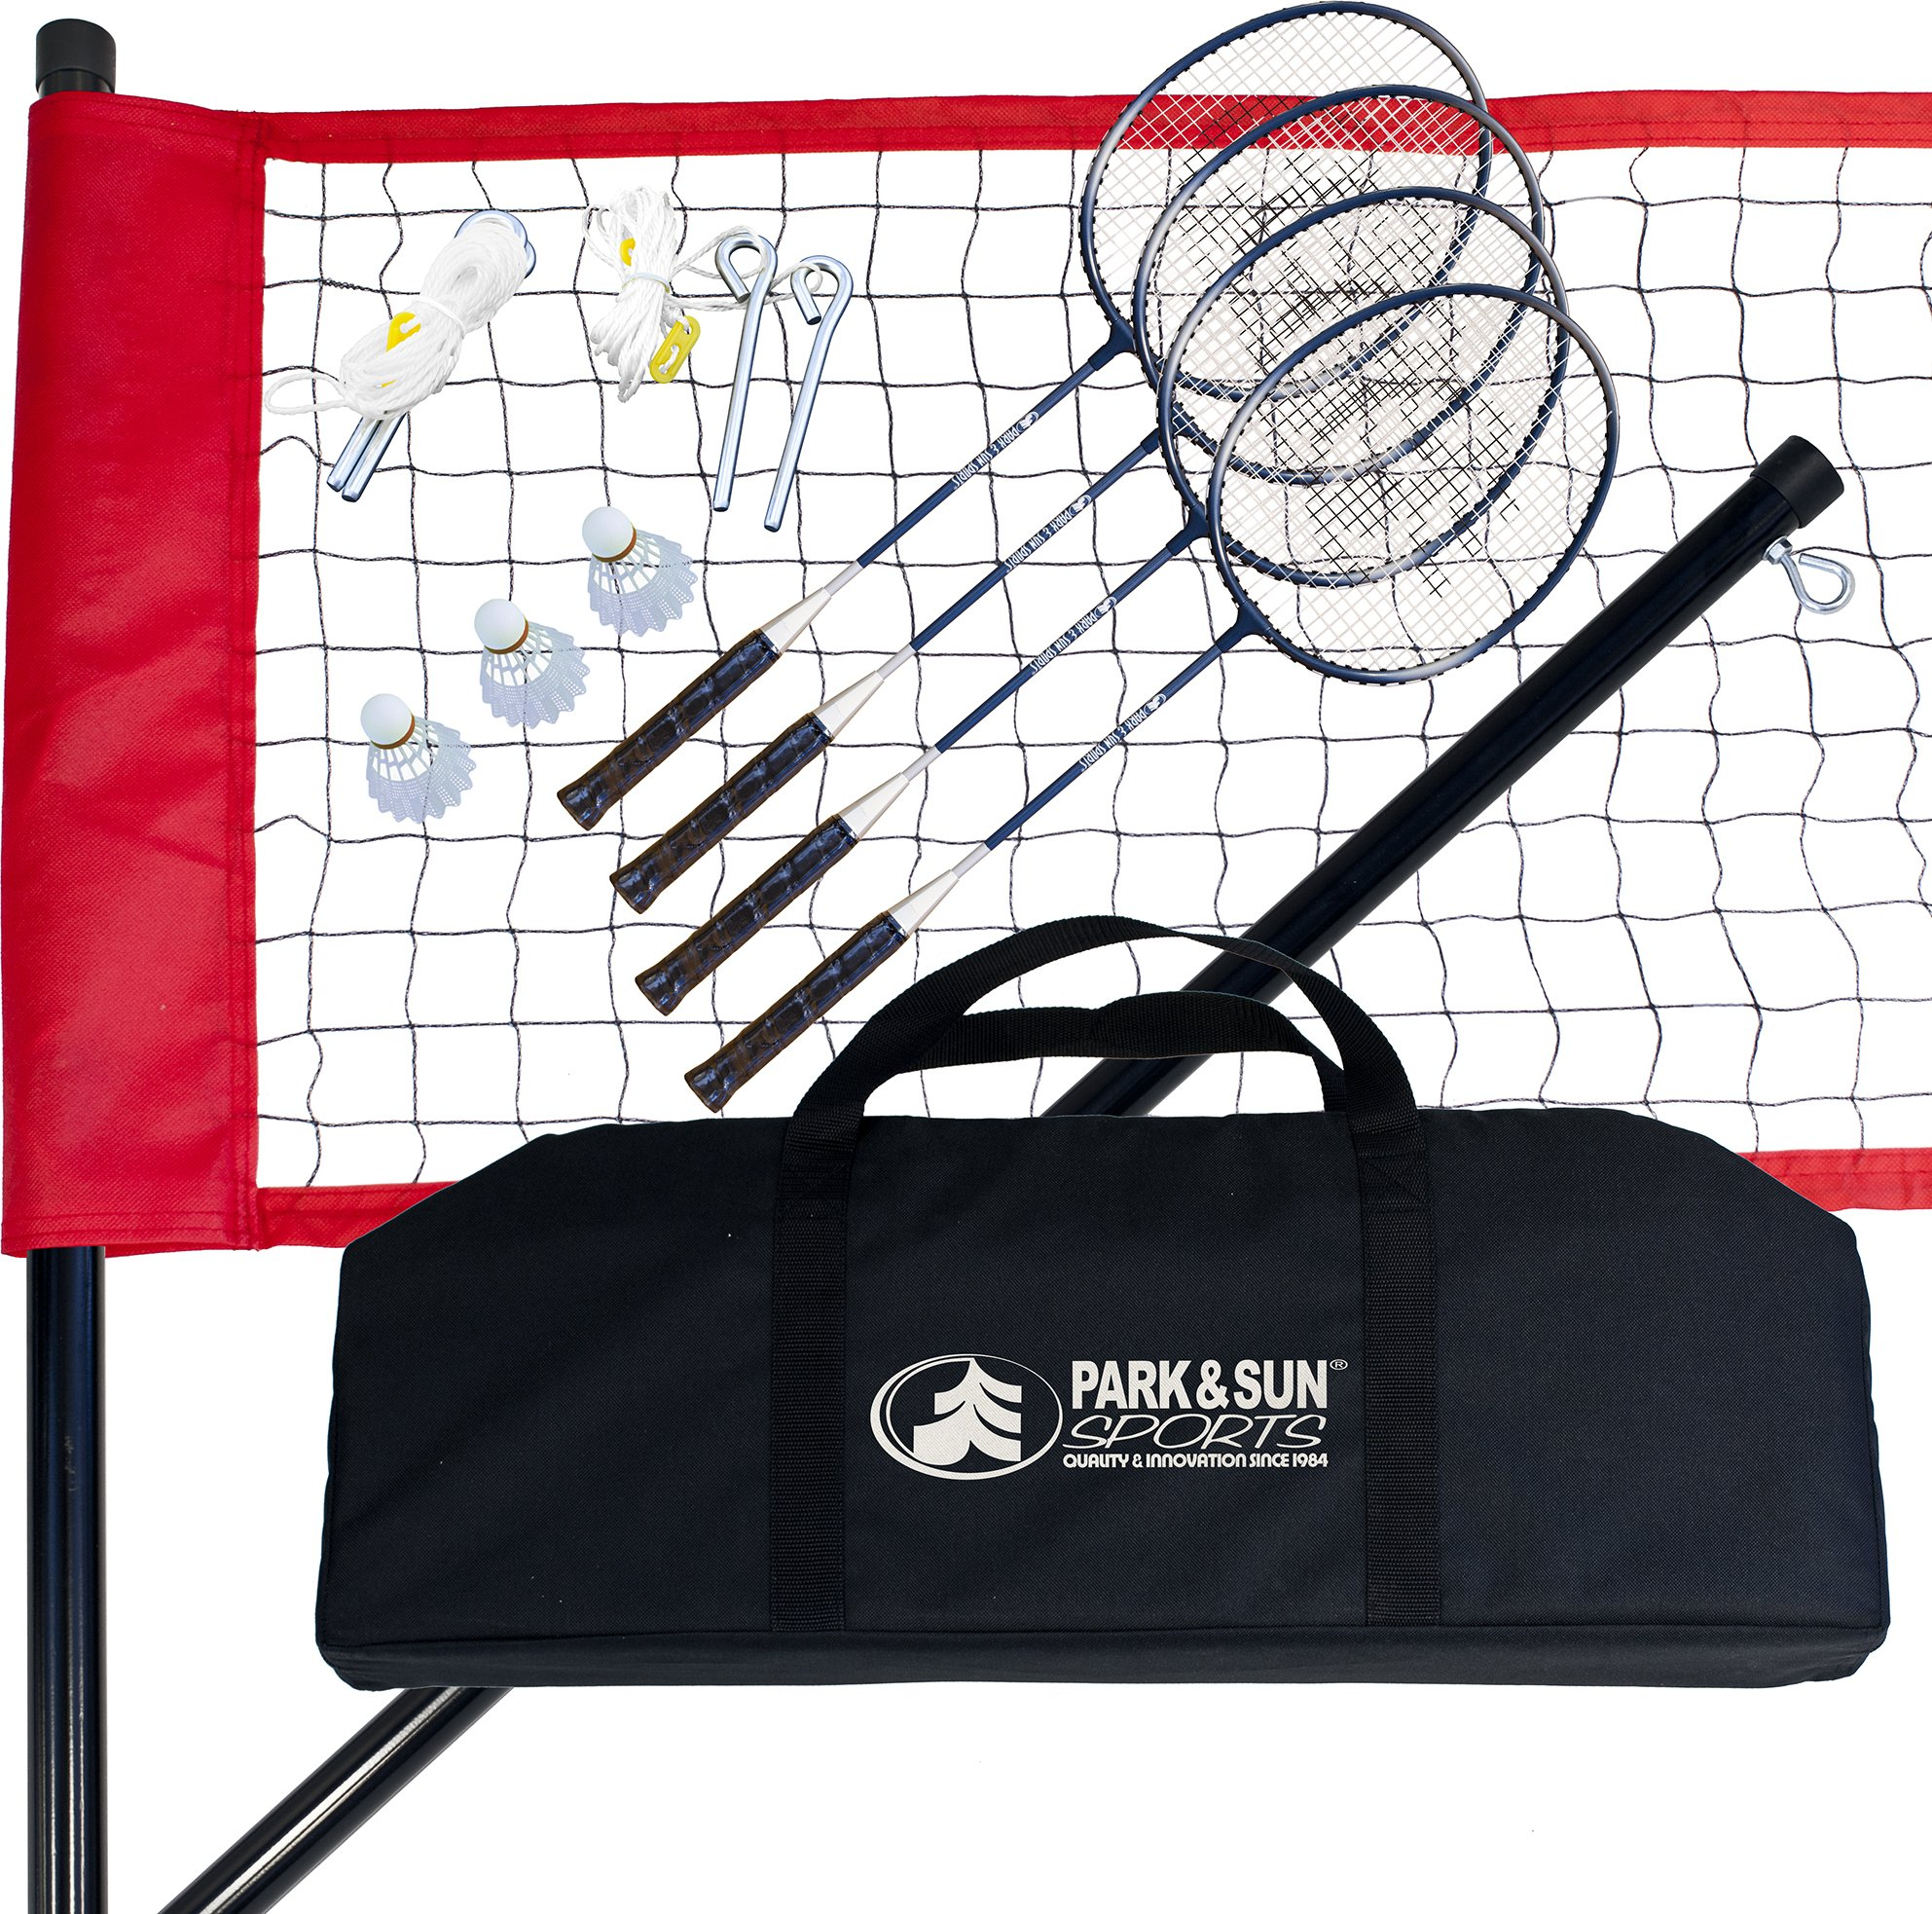 Park & Sun Sports Portable Outdoor Badminton Net System with Carrying Bag and Accessories: Sport Series